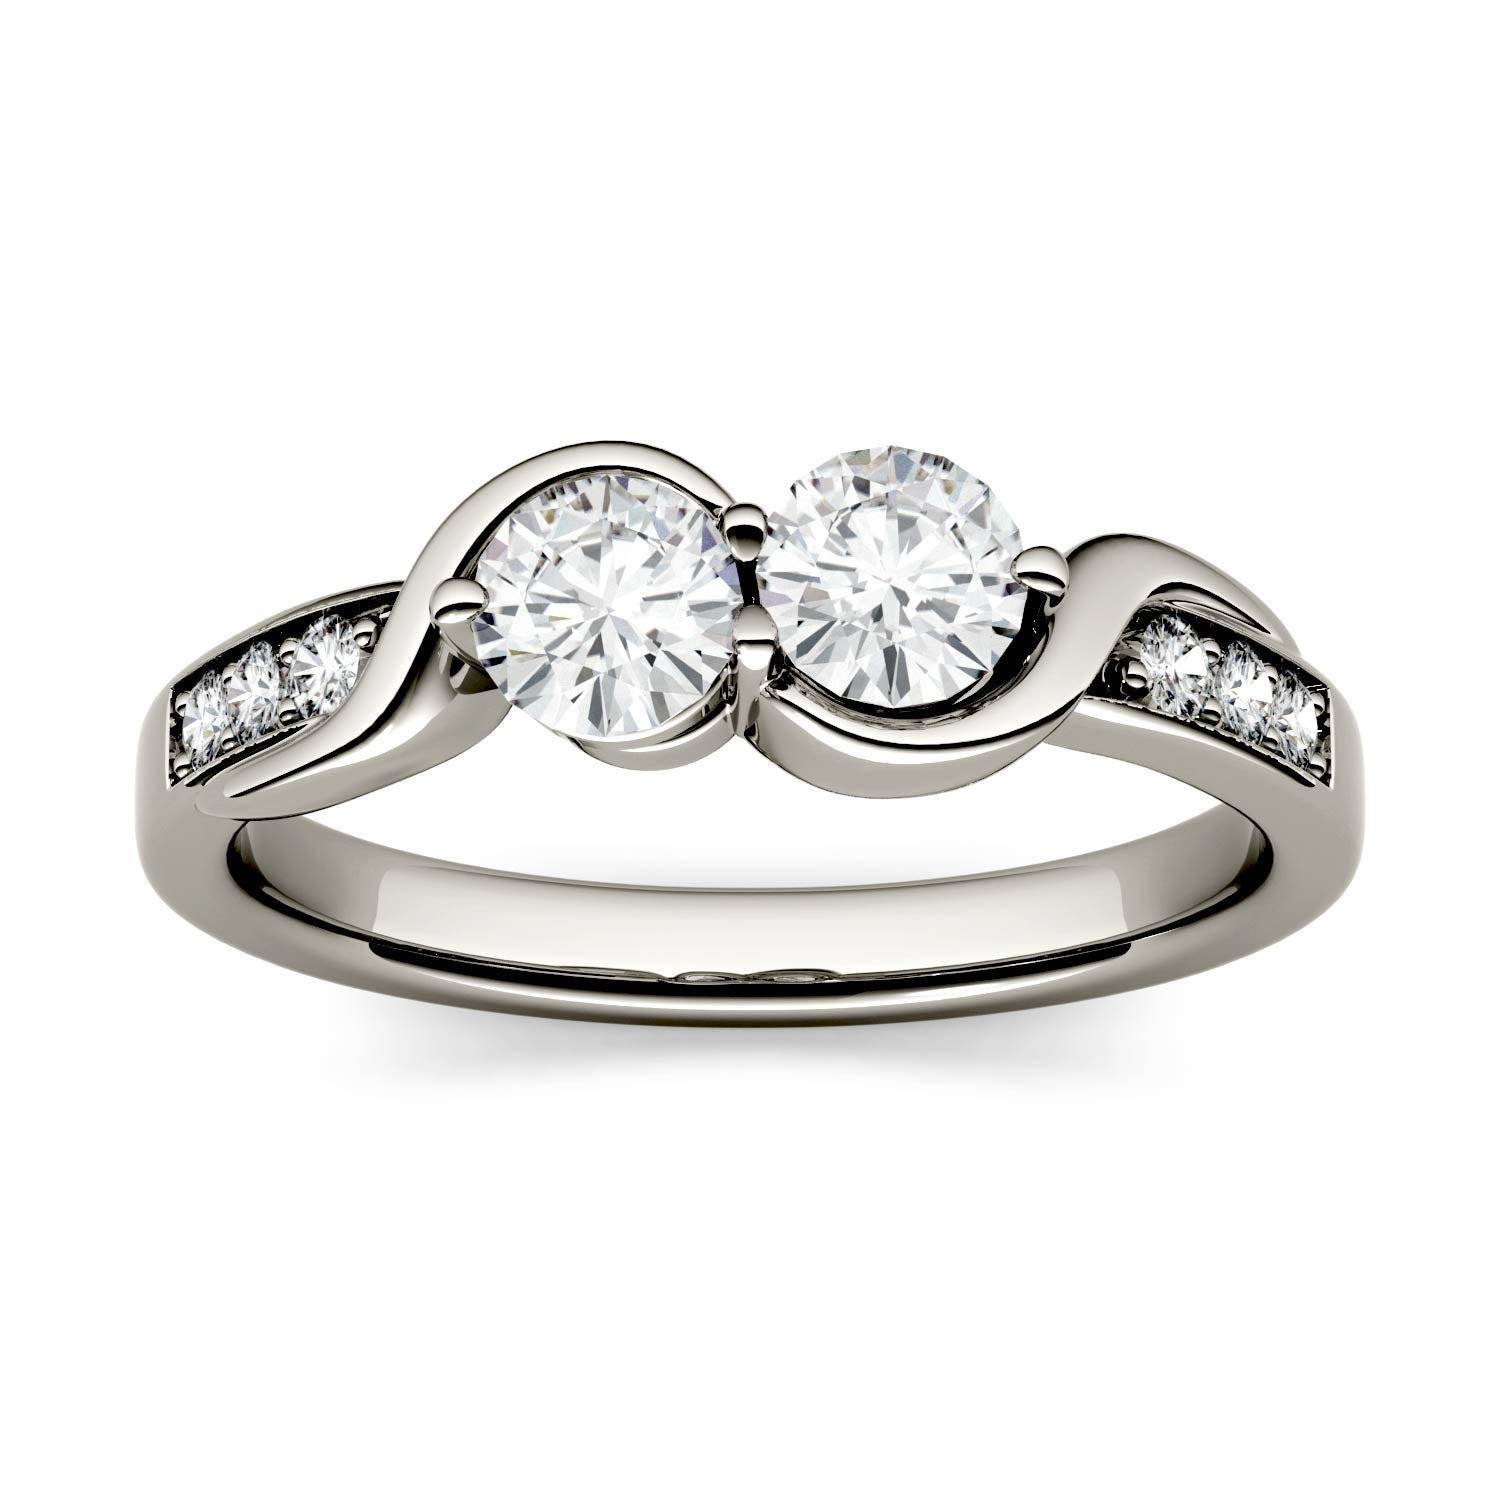 Charles & Colvard Two Stone Swirl with Side Accents Wedding Ring in 14K White Gold, Size: 8, 1.12CTW Round Forever One - Colorless Moissanite Charles & Colvard  - White Gold - Size: 8